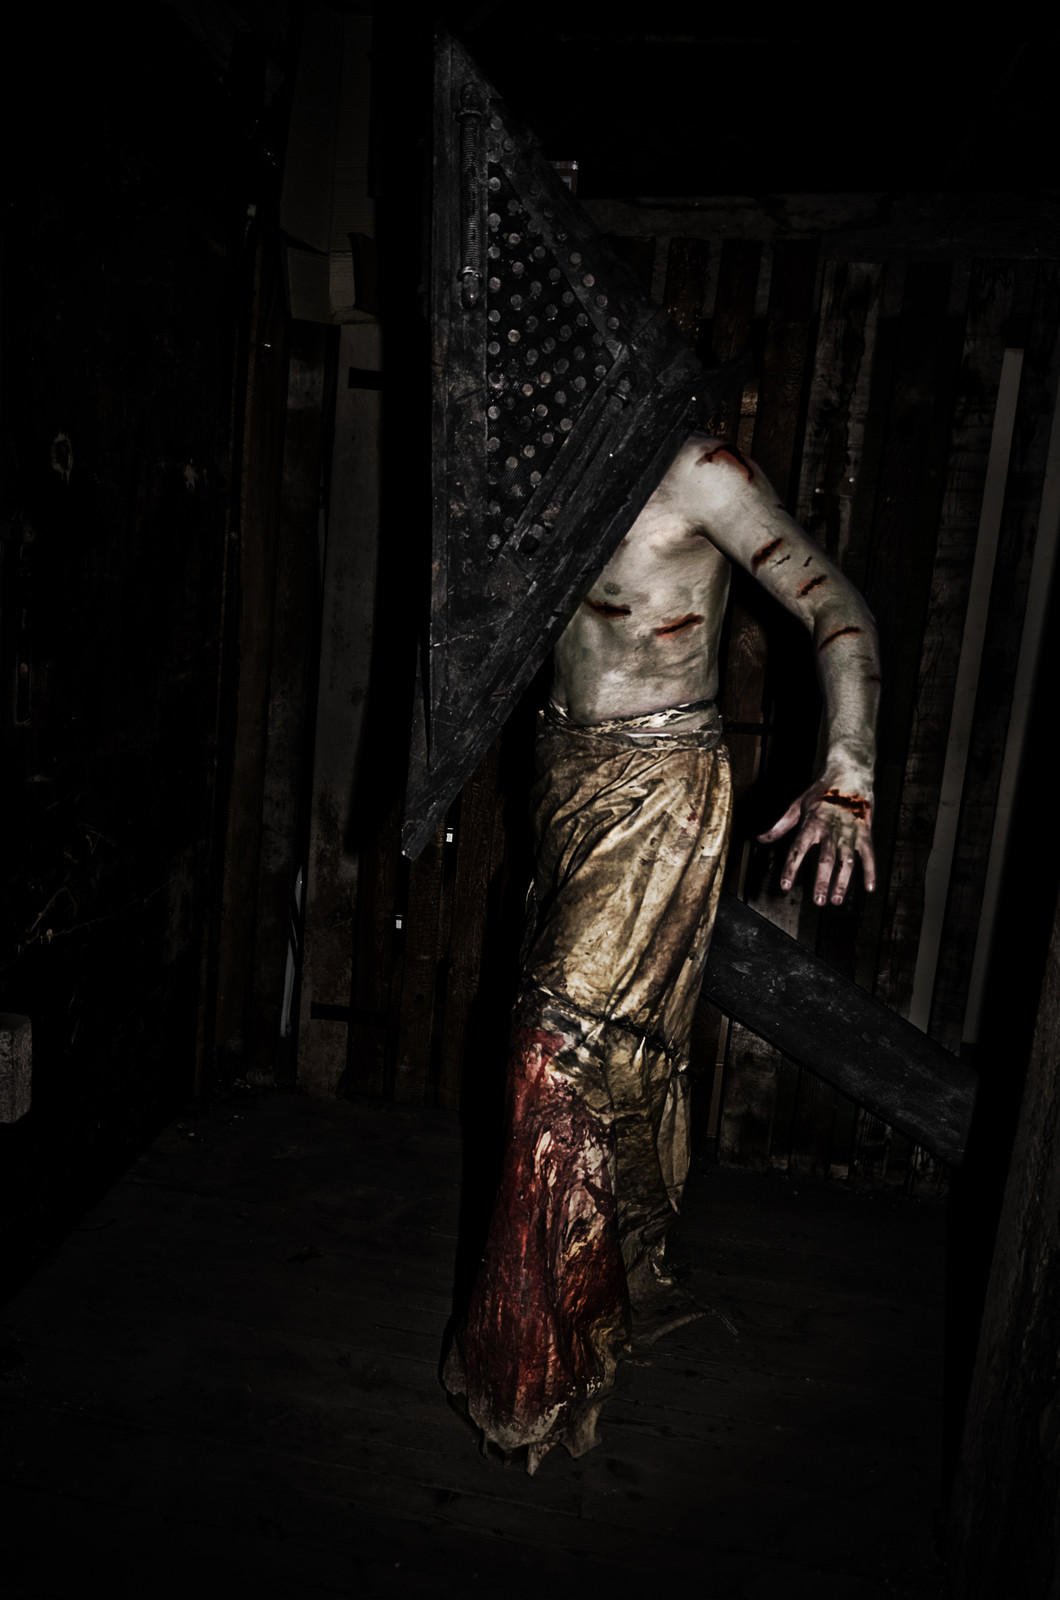 Pyramid Head is coming by Corroder666